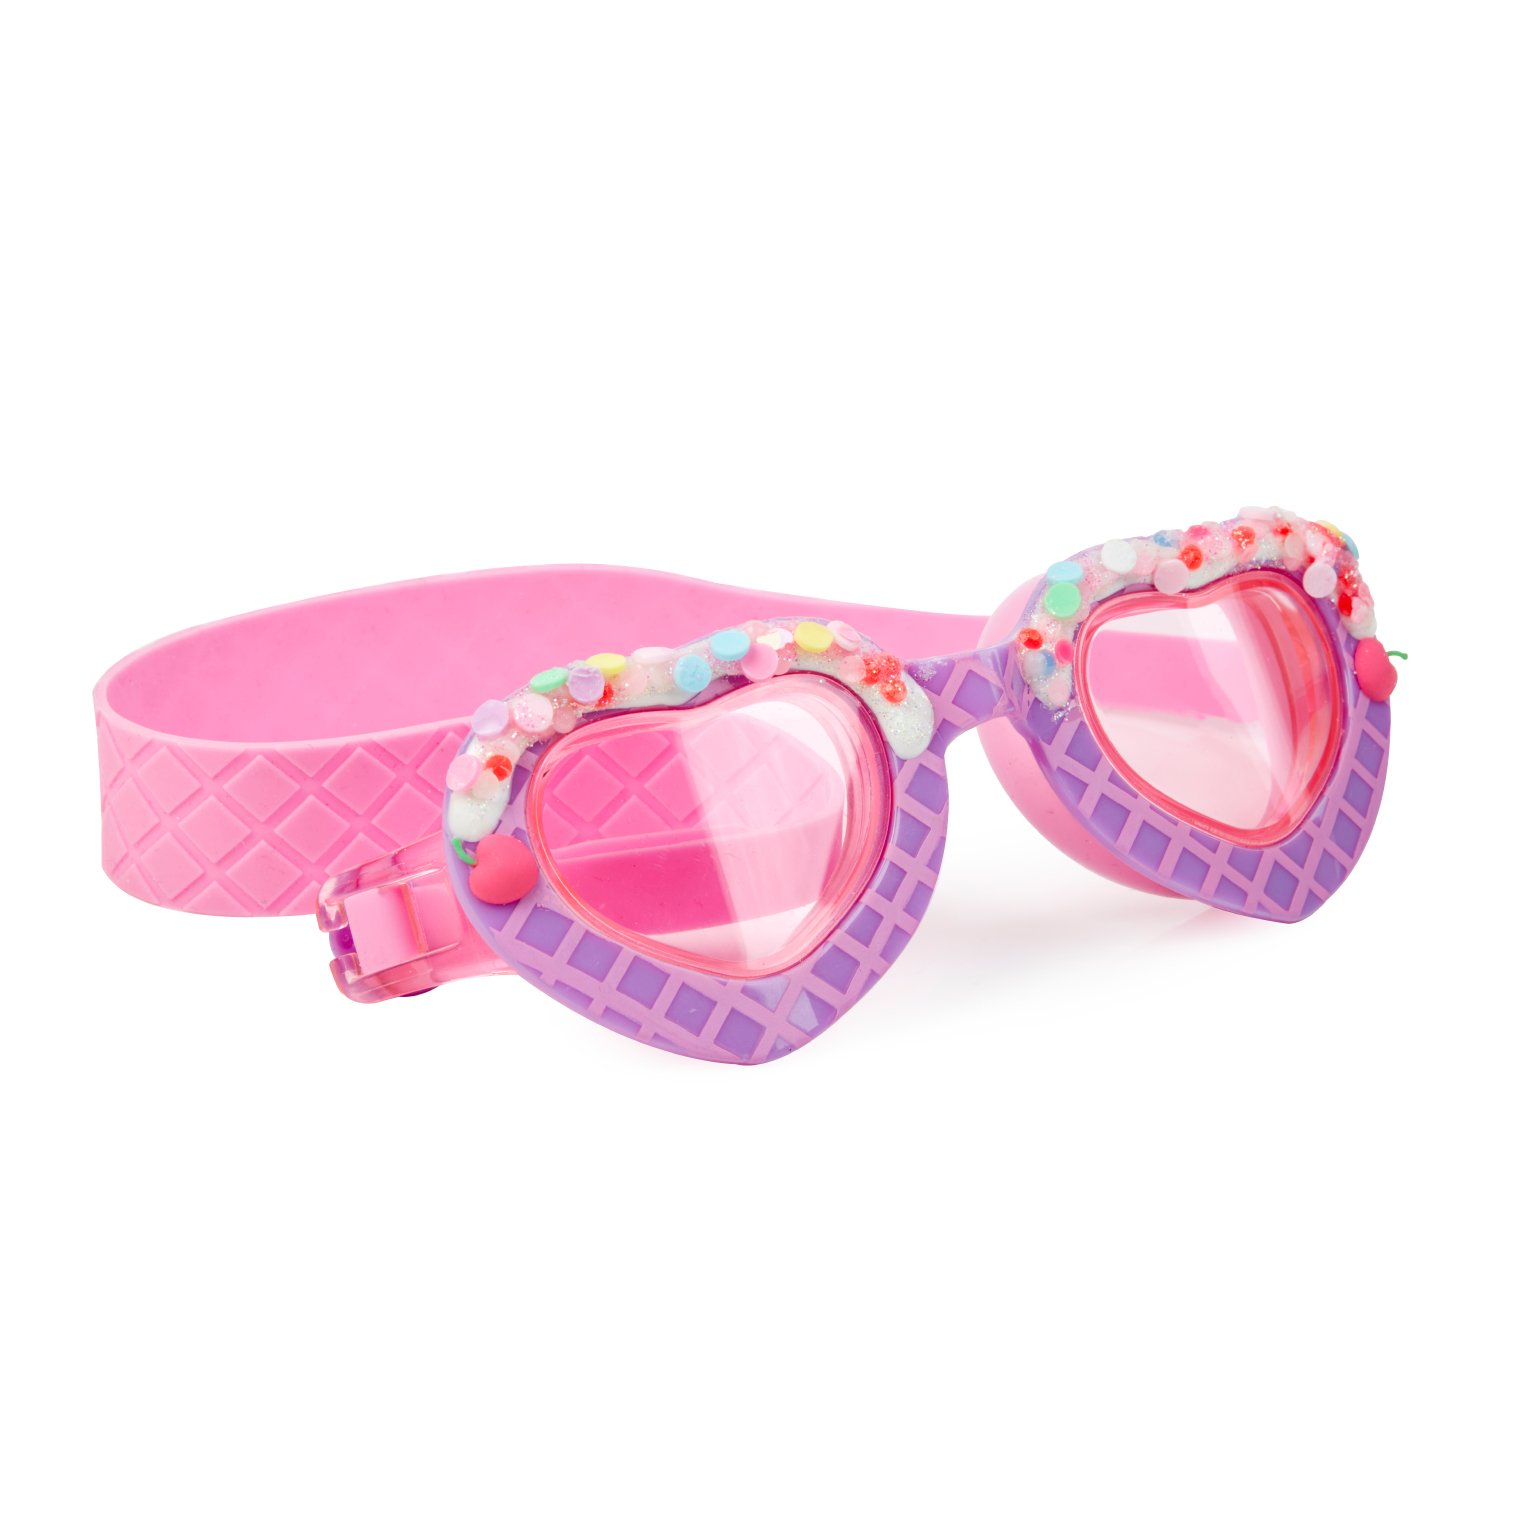 Heart Shaped Swimming Goggles For Kids by Bling2O - Anti Fog, No Leak, Non Slip and UV Protection - Whipped Blueberry Fun Water Accessory Includes Hard Case